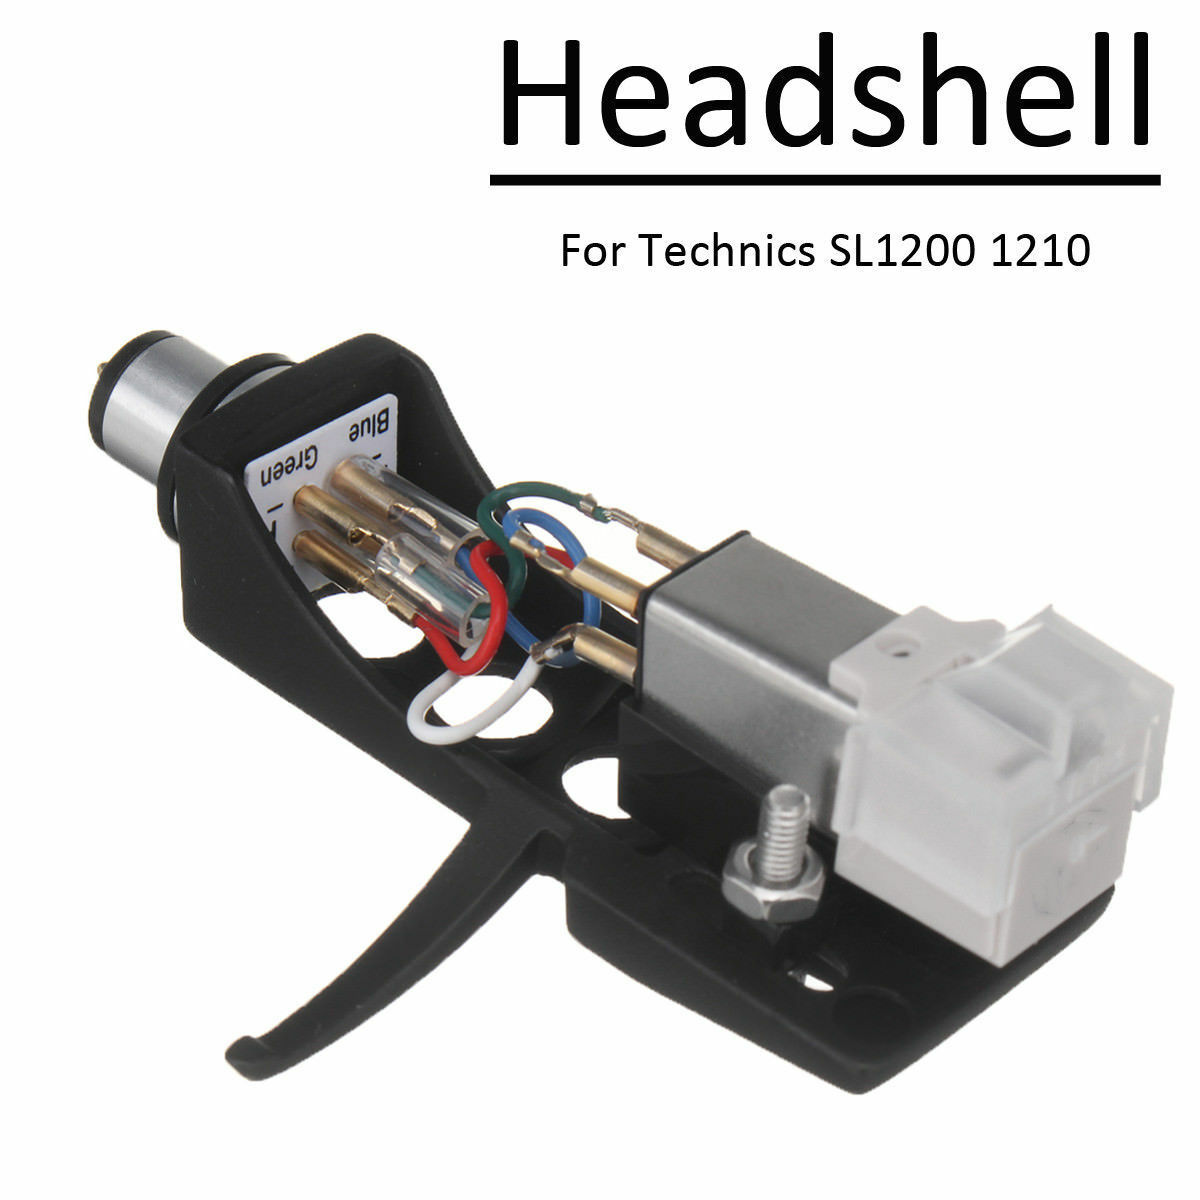 Turntable Headshell Mount Stylus Plastic Cartridge with Lead Wires Replacement Set Contact Universal Accessories Holder Phono Record Player for LP